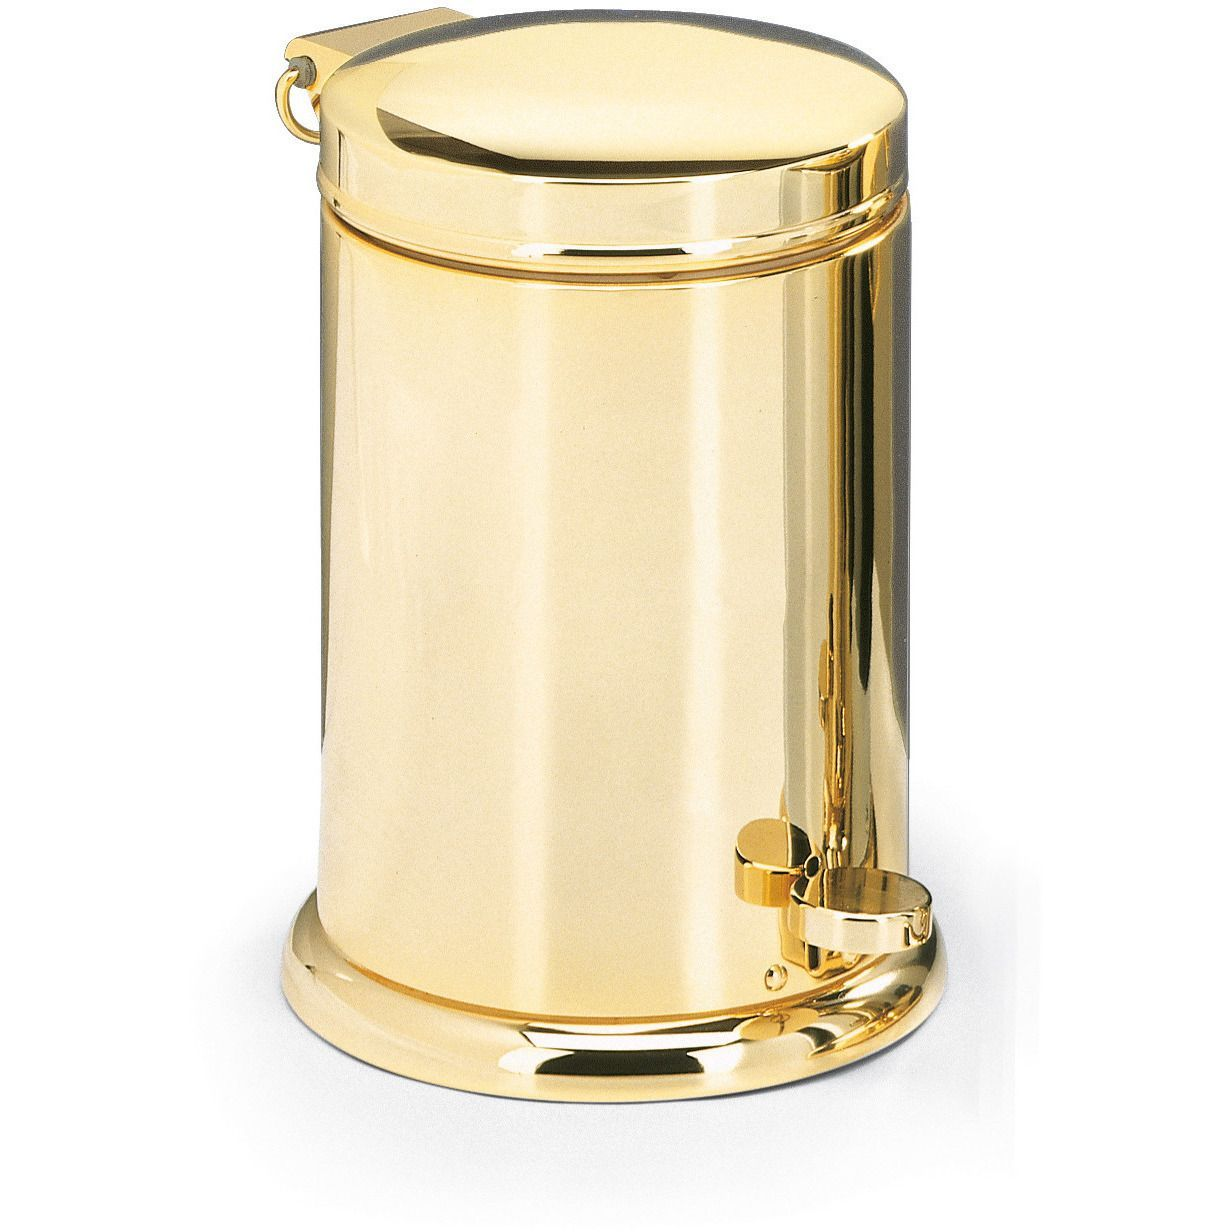 Dwba luxury round step trash can brass polished for Covered bathroom wastebasket